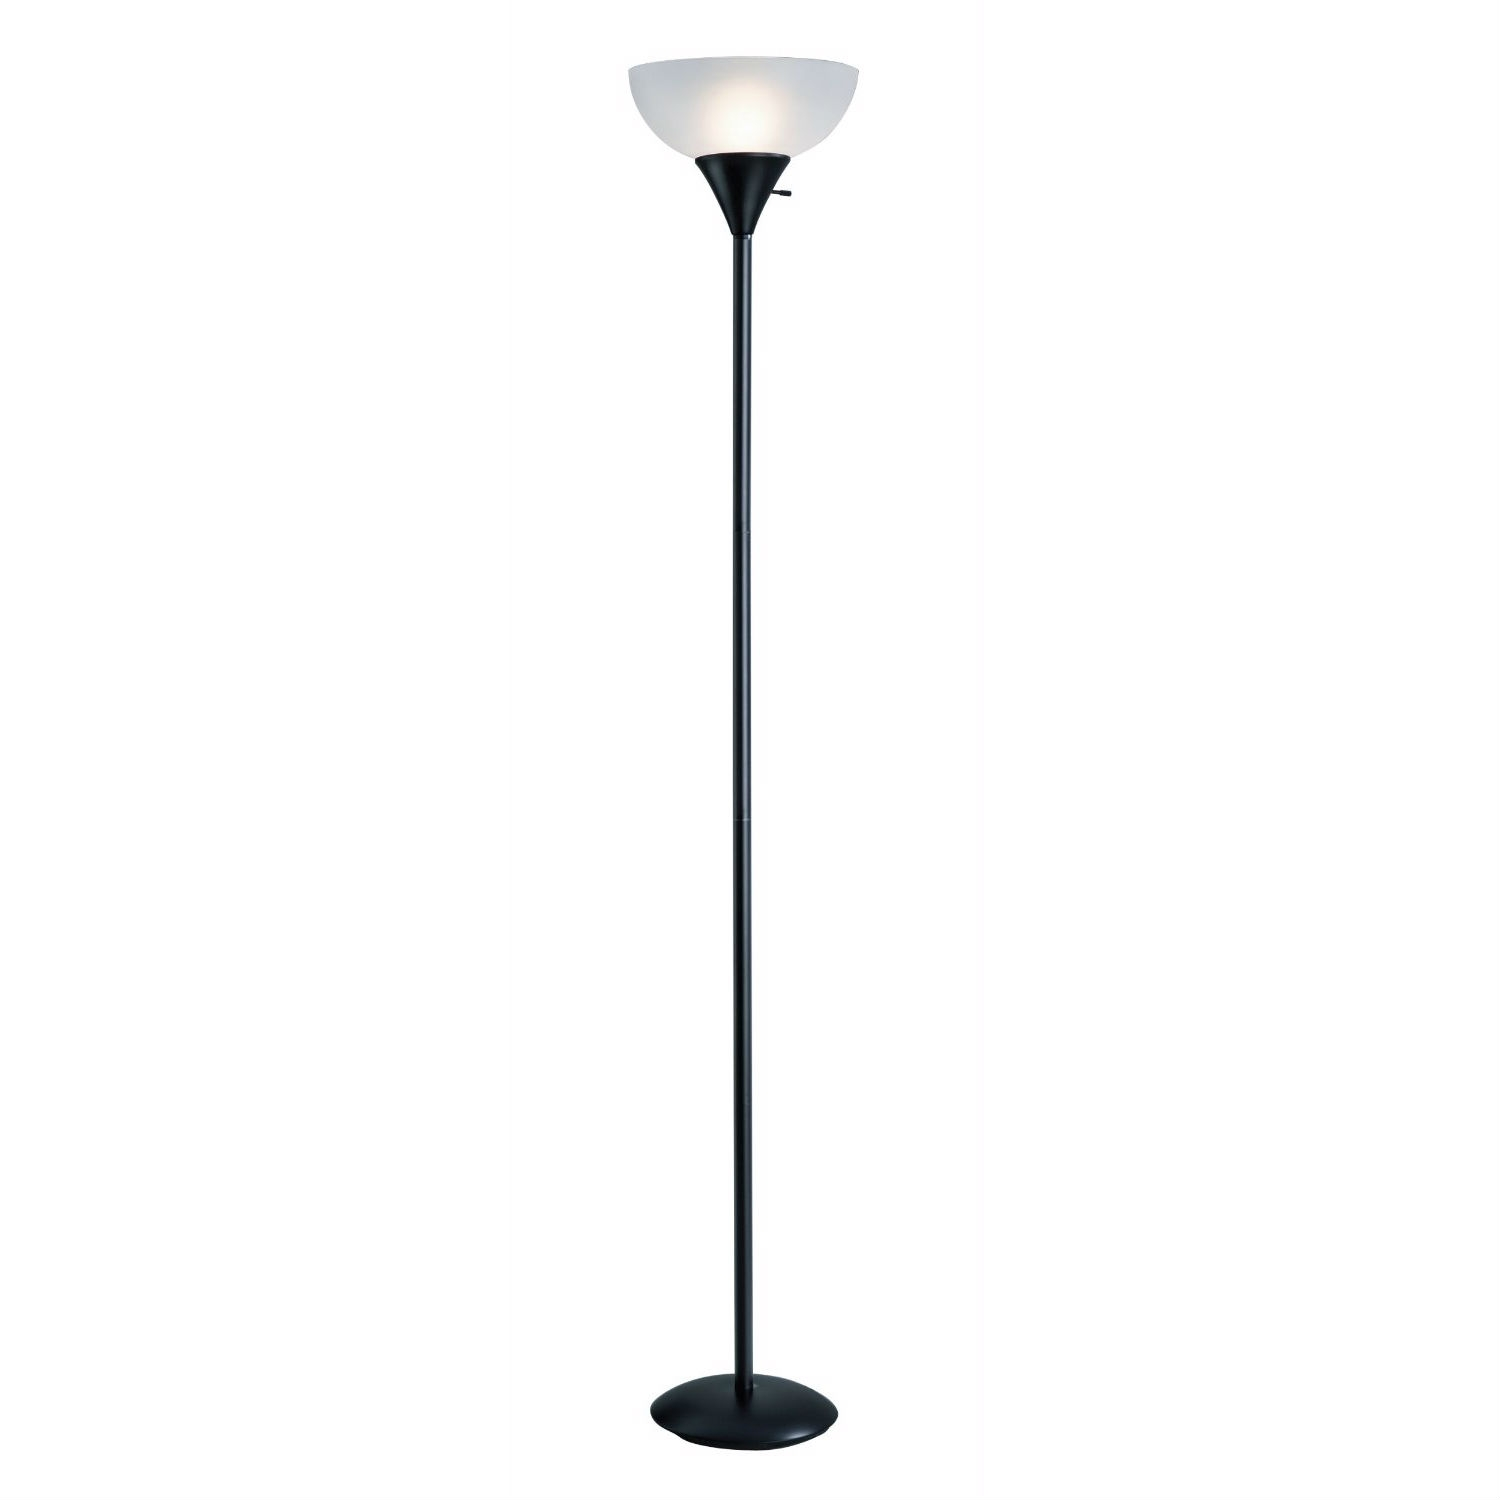 A great choice for living rooms, offices, and dens, this Black 70-inch 150-Watt Floor Lamp White Frosted Shade provides illumination for small- to medium-size rooms. It has a sleek black-painted finish with a gently curved white-frosted plastic shade that will accommodate modern and transitional decor. It's operated via a three-way rotary switch. This lamp uses a maximum 150-watt A-type three-way incandescent bulb (not included). It measures 71-1/4 inches tall and 11-3/4 inches in diameter. Assembly required. Note: This lamp is not compliant with California Title 24 lighting requirements.